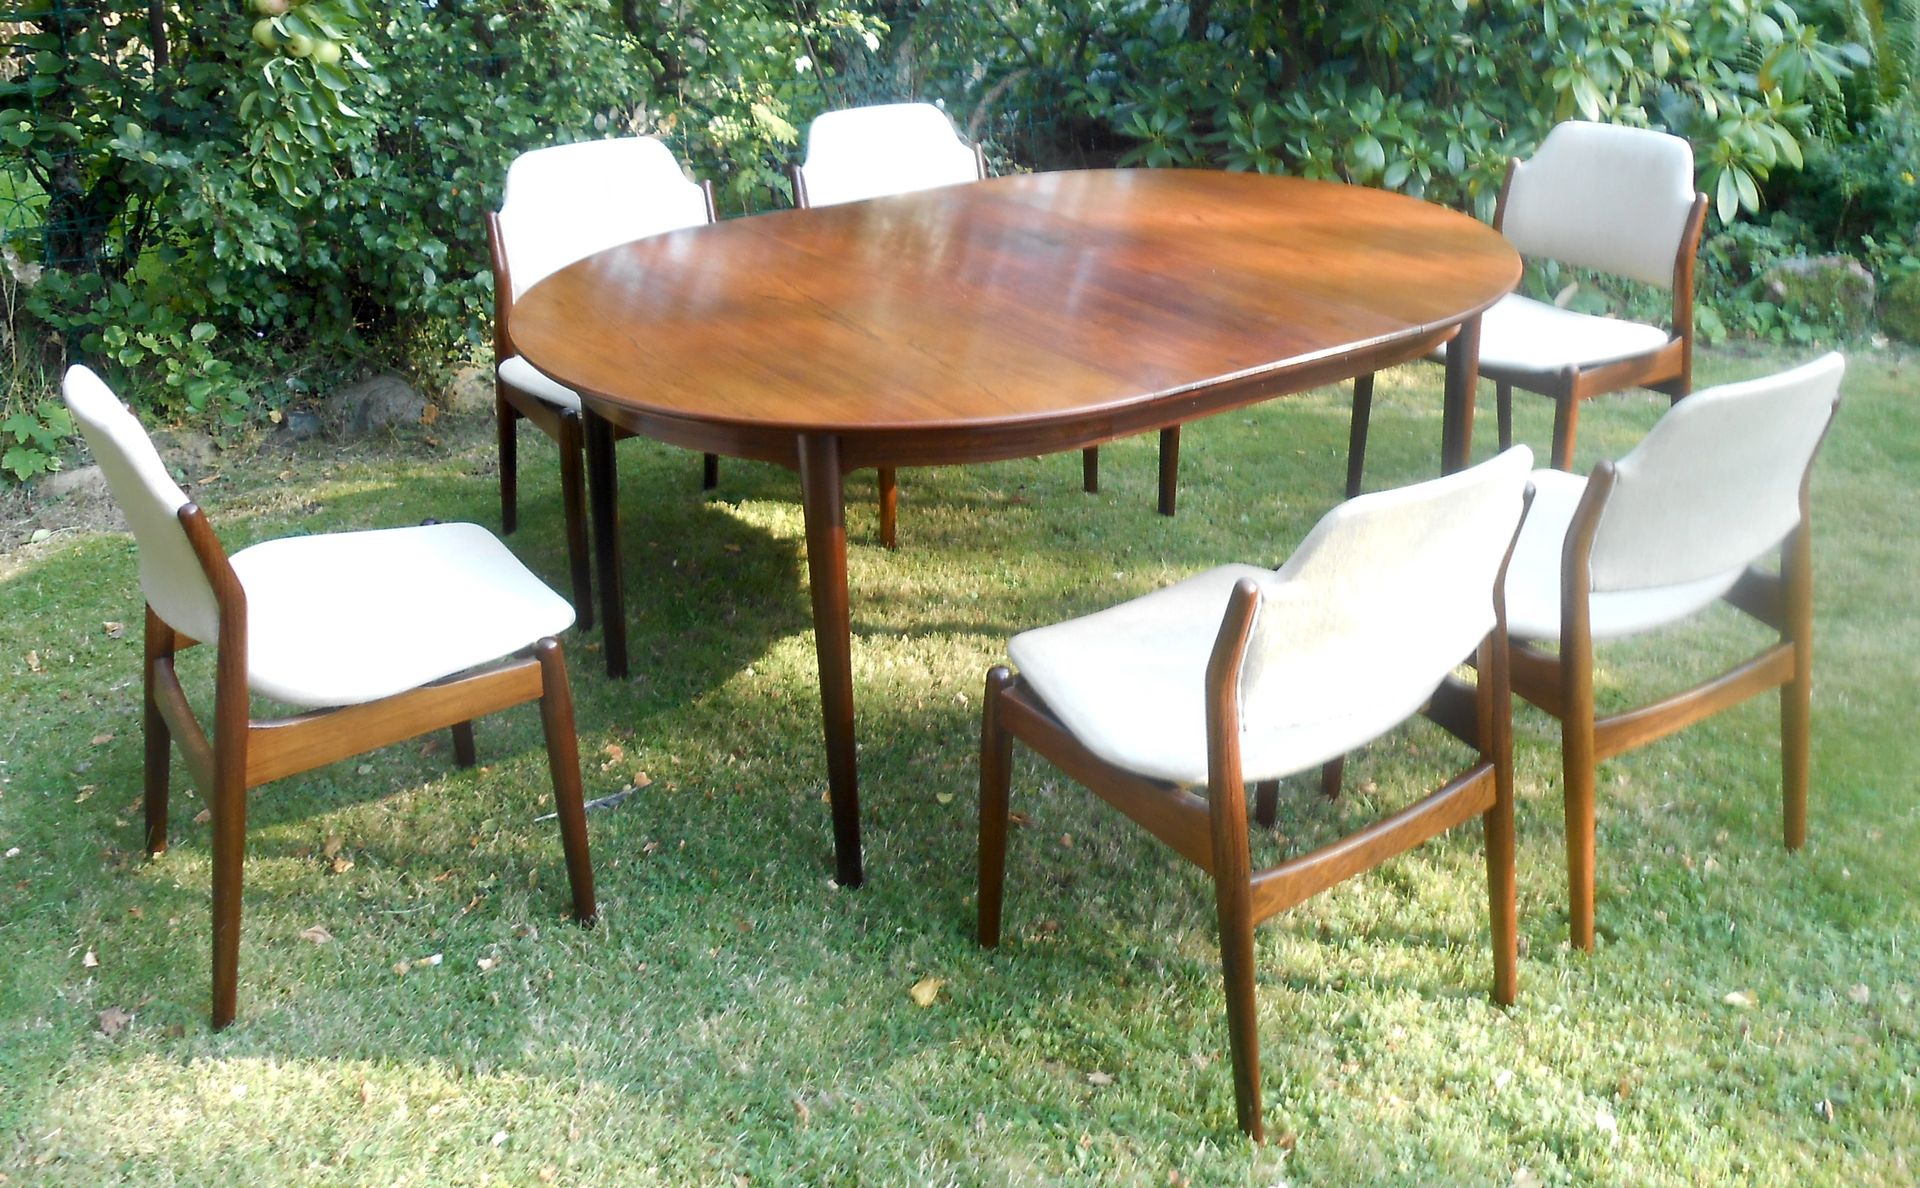 Details about 48 inch round formal duncan phyfe rosewood dining table - Rosewood Dining Set By Arne Vodder For Sibast 1960s For Sale At